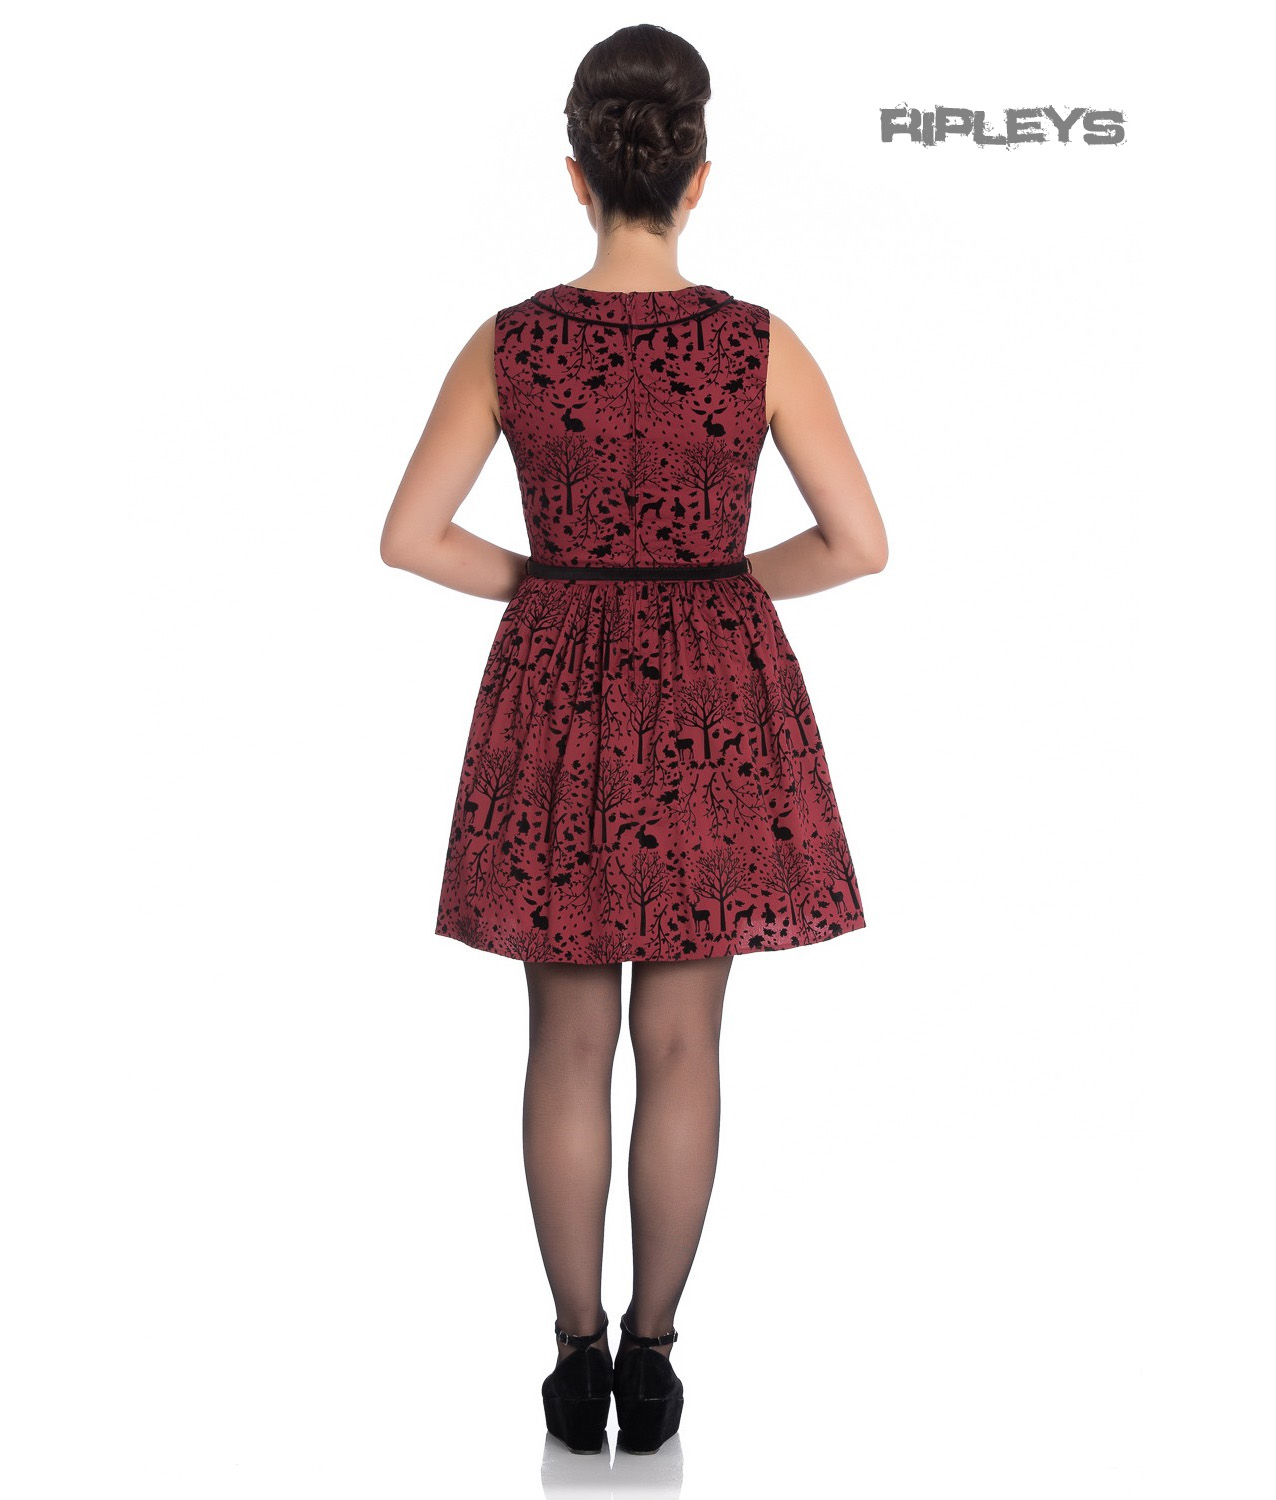 Hell-Bunny-50s-Mini-Skater-Dress-Woodland-Trees-SHERWOOD-Black-Red-All-Sizes thumbnail 12